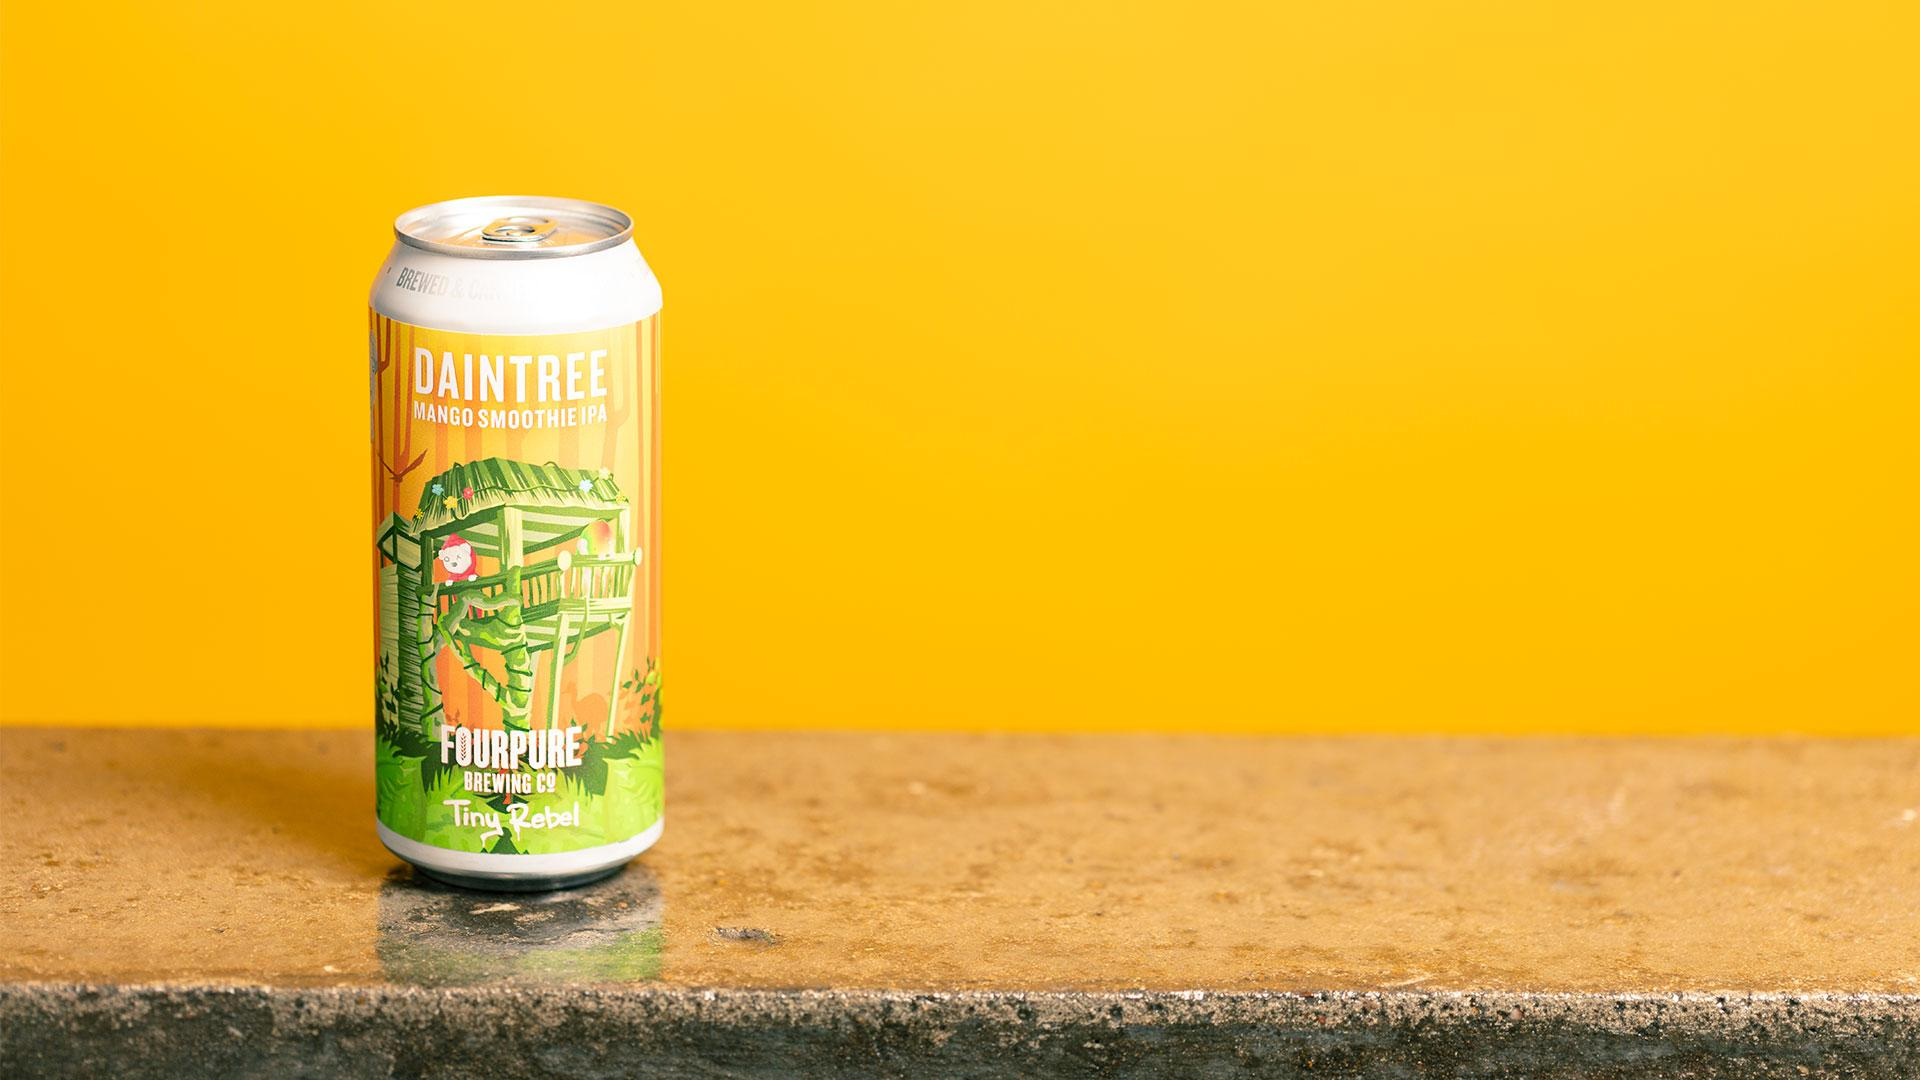 Tesco craft beer: Fourpure x Tiny Rebel Daintree Mango Smoothie IPA